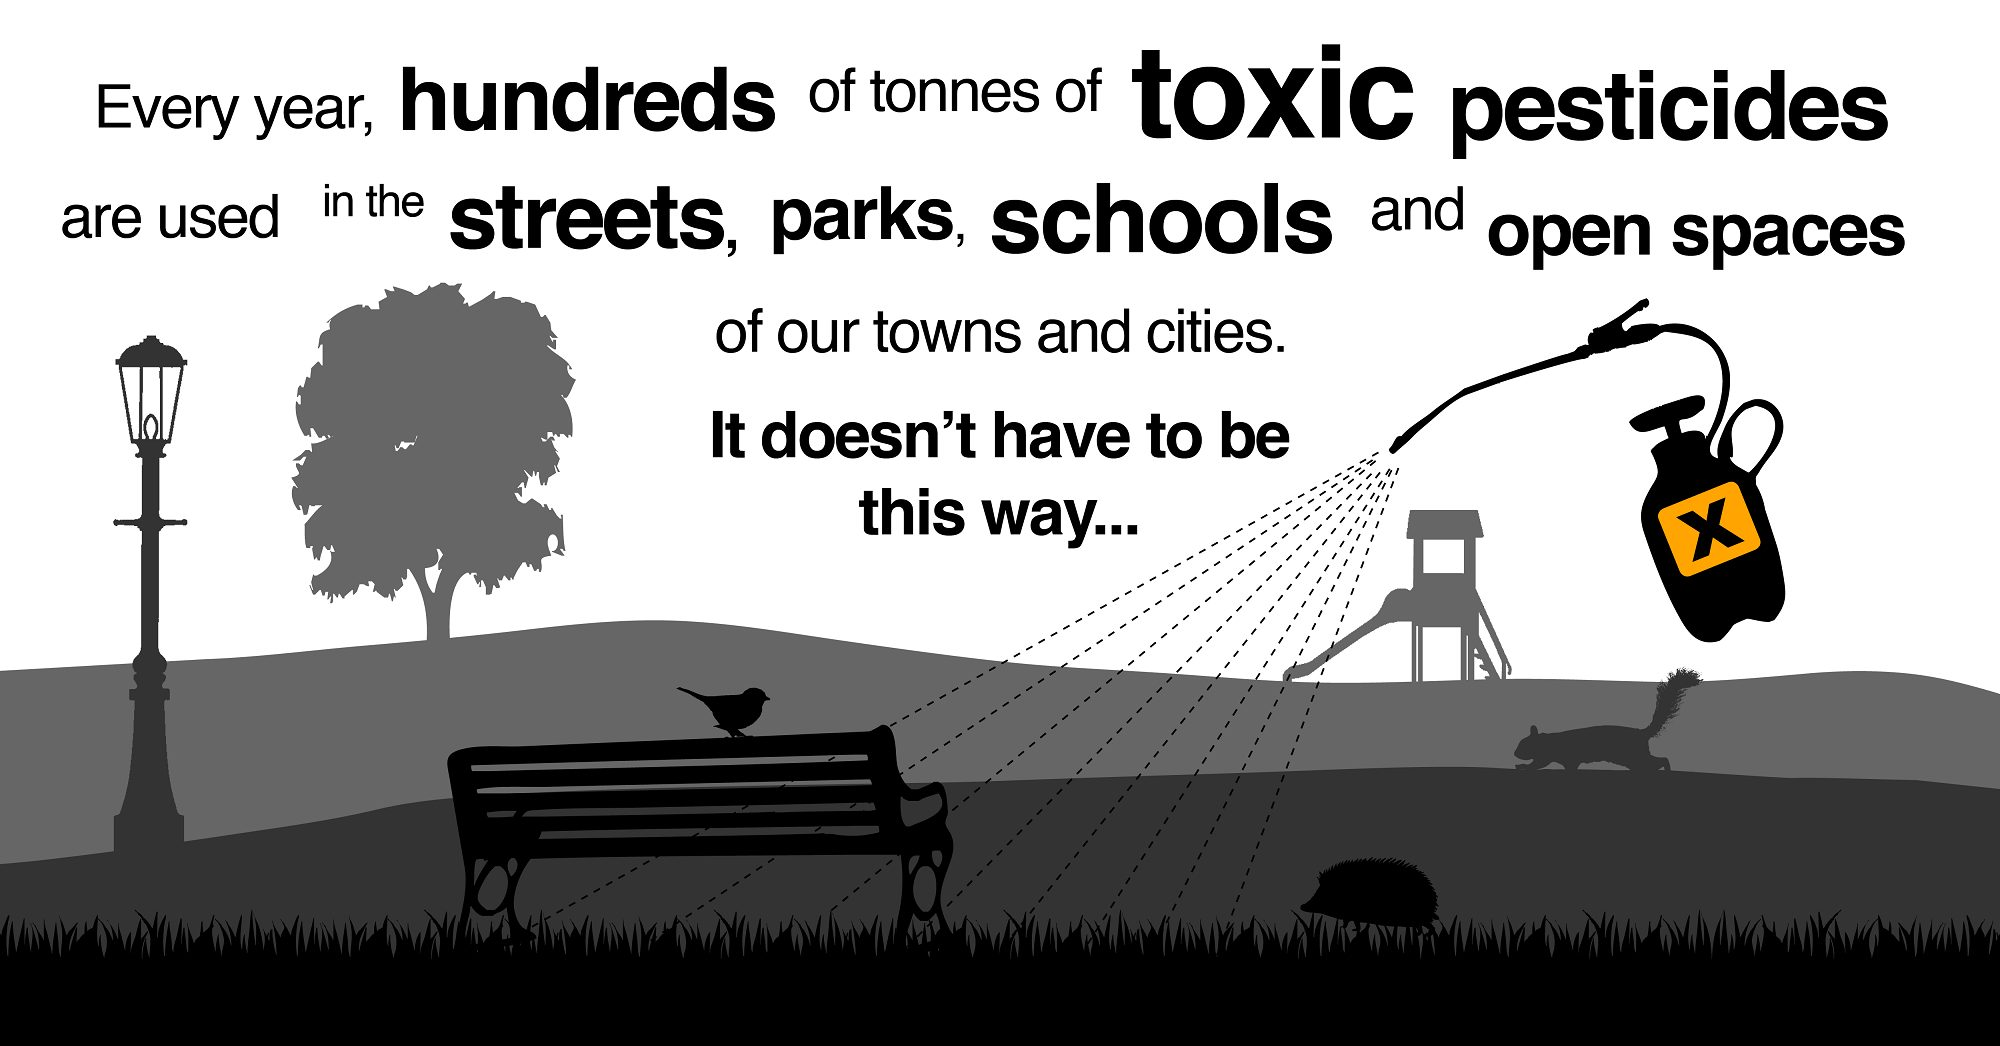 We want pesticide-free towns and cities - take action